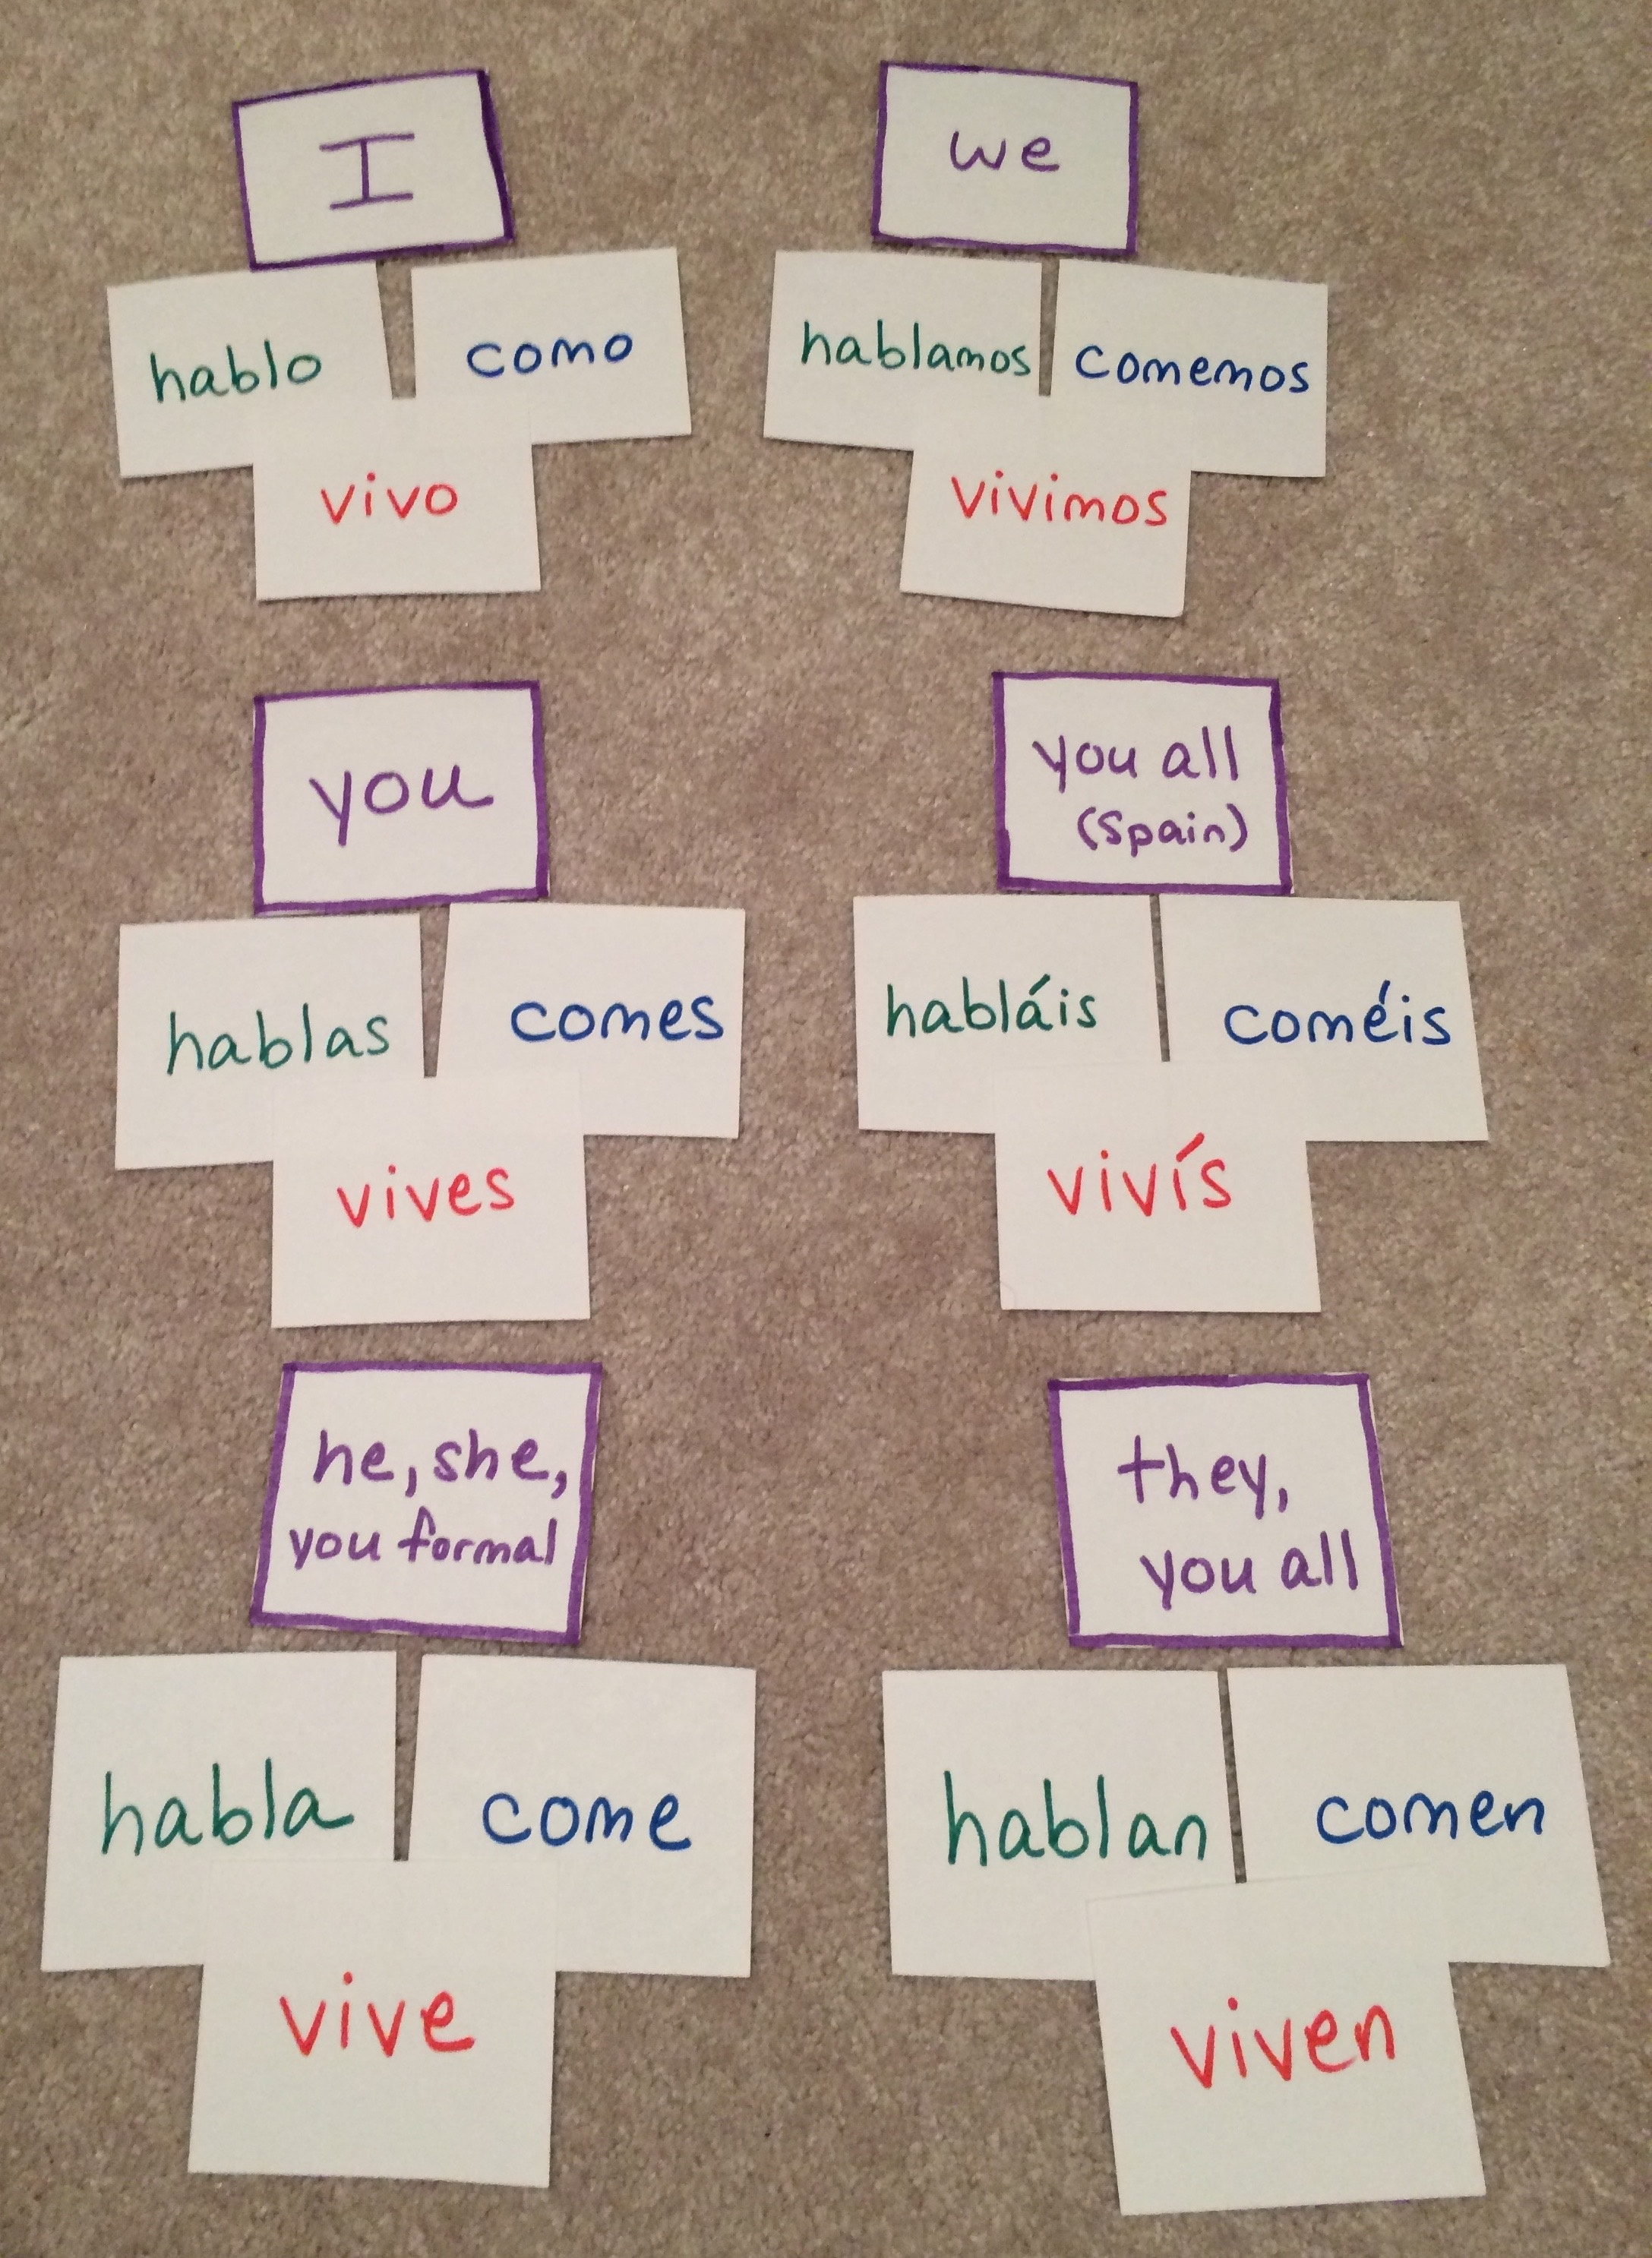 Spanish Verb Conjugation Activities For Kids - Spanish For You! - Free Printable Spanish Verb Flashcards